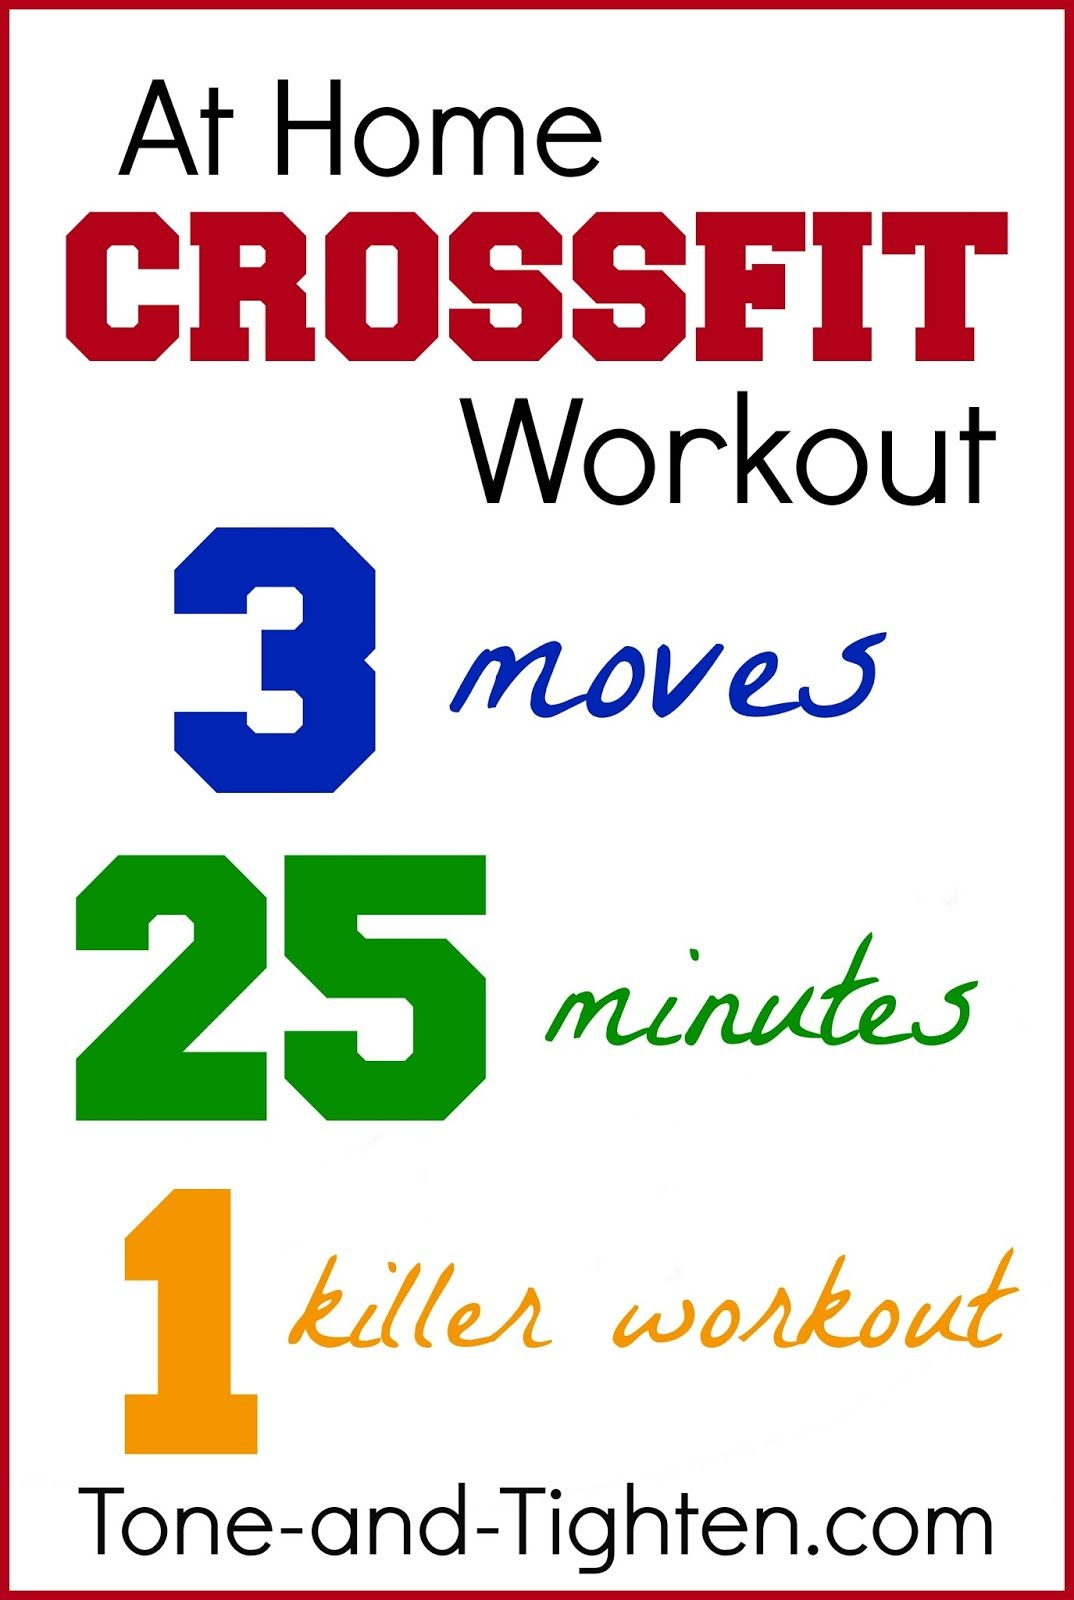 c796bd5dc At Home Crossfit Workout from Tone-and-Tighten.com. 3 moves